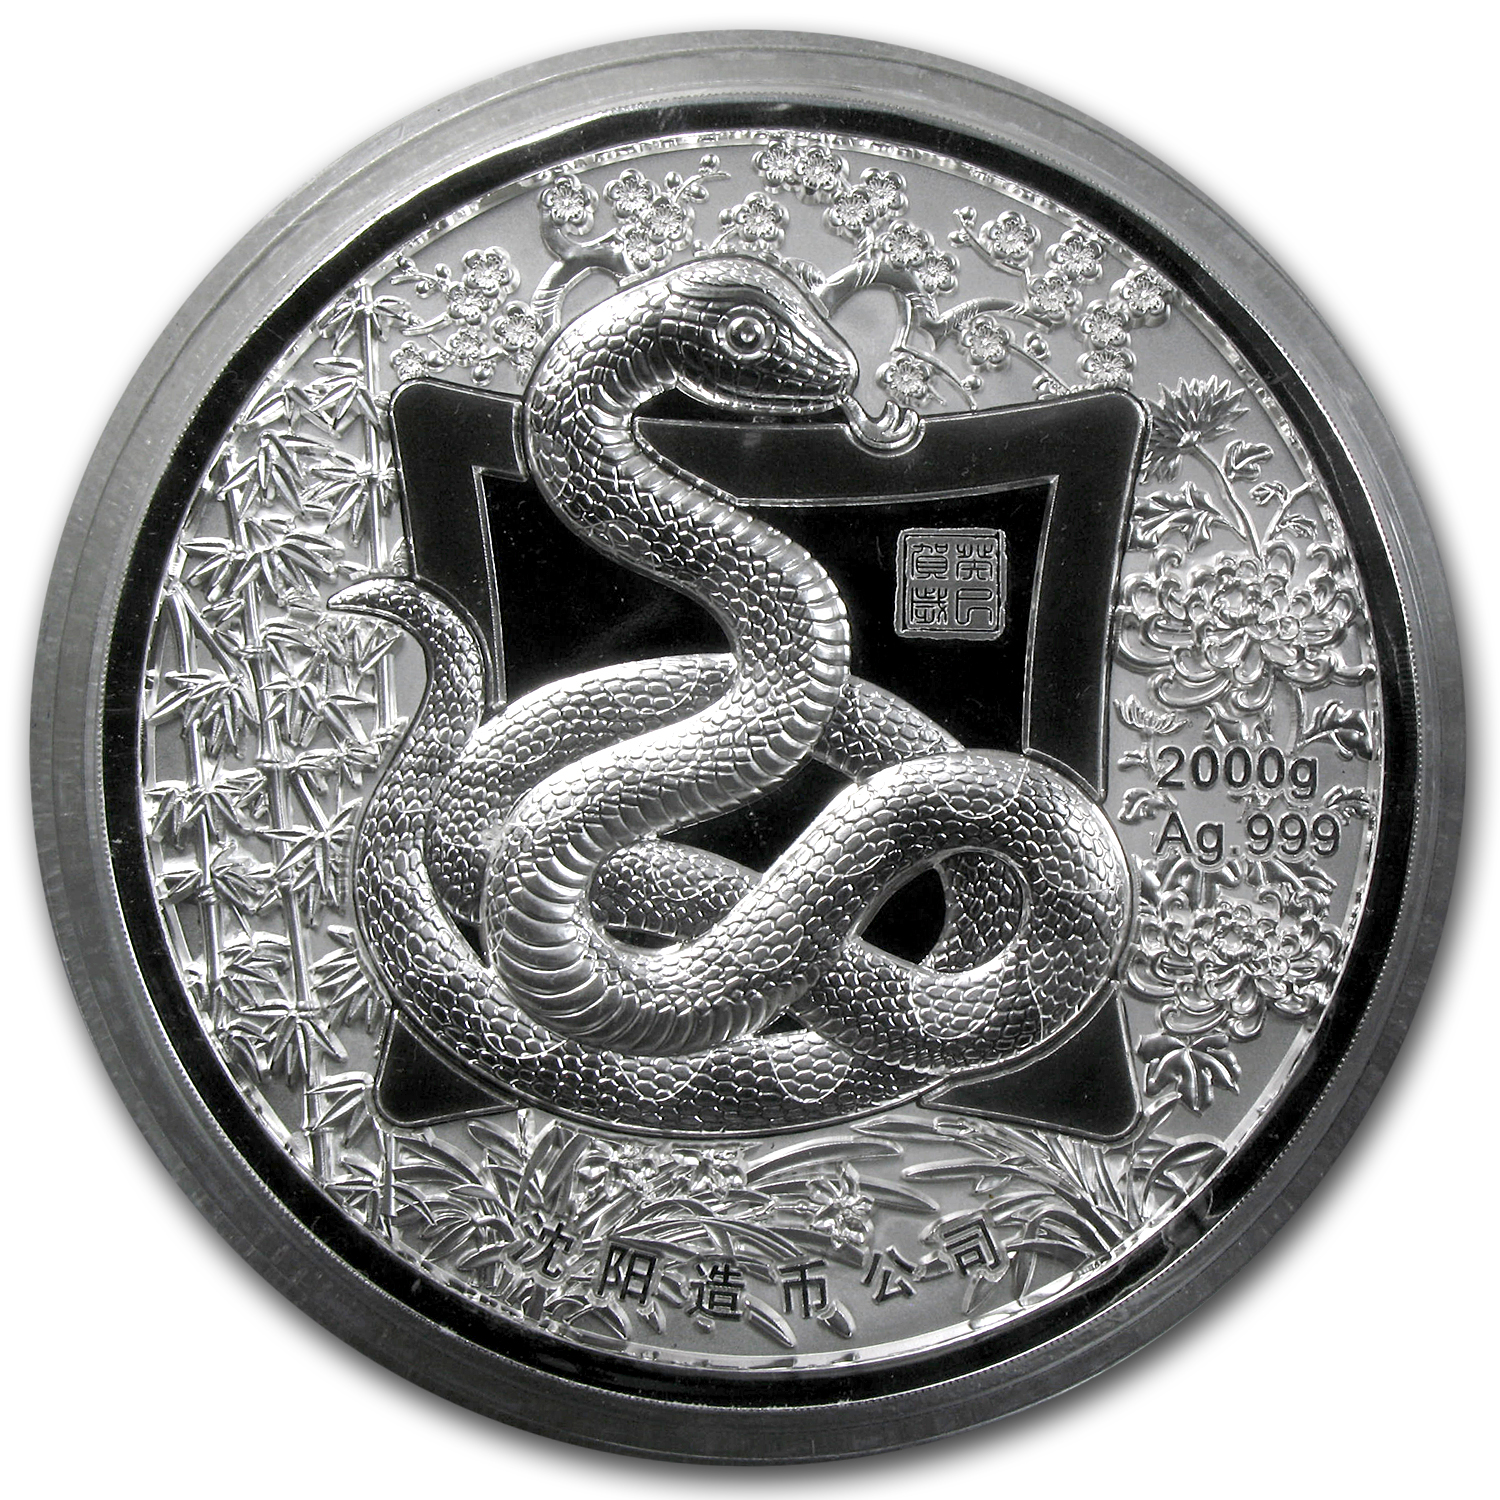 2013 China 2 kilo Silver Year of the Snake